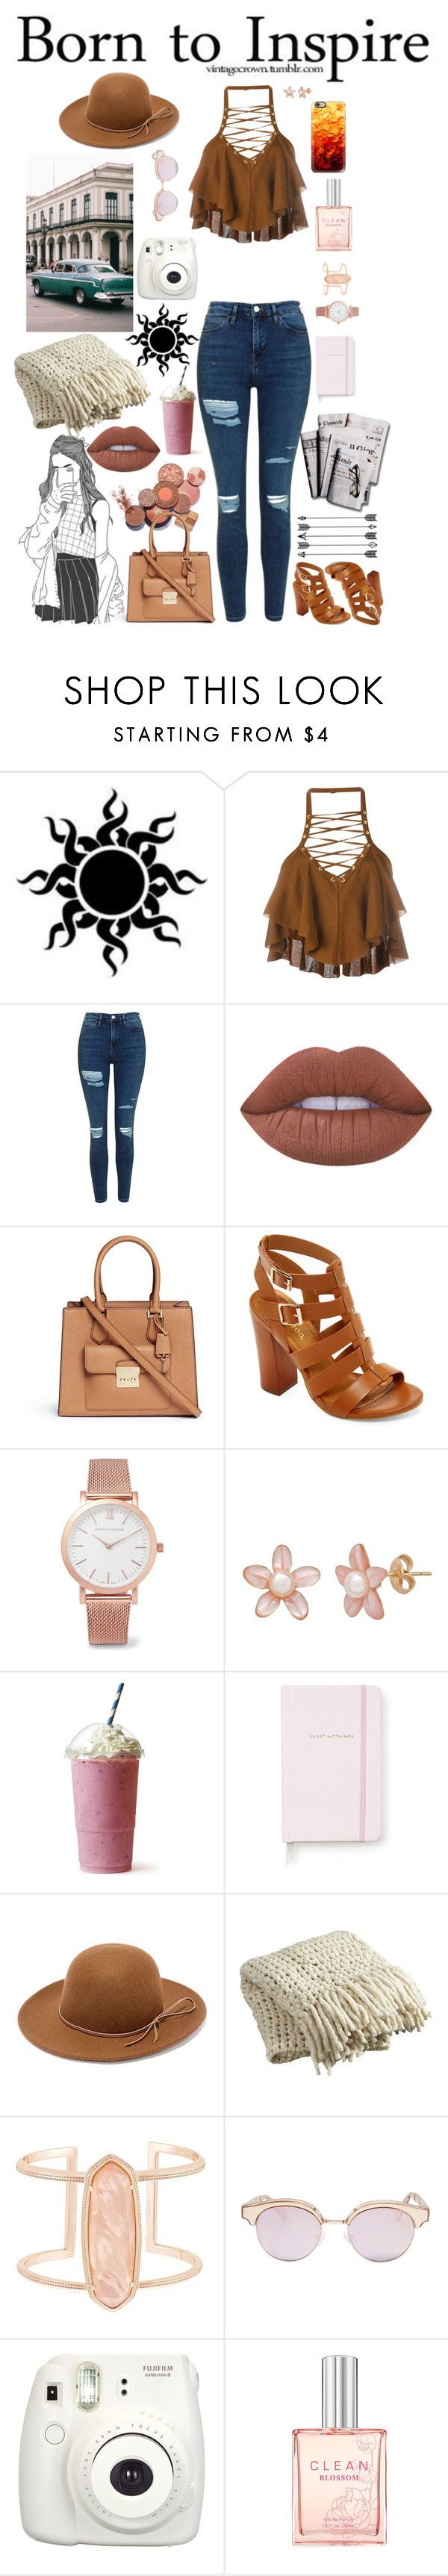 """""""Born To Inspire"""" by carmen-alejandra ❤ liked on Polyvore featuring Balmain, Topshop, Lime Crime, Michael Kors, Bamboo, Larsson & Jennings, Kate Spade, 7 For All Mankind, RHYTHM and CB2"""